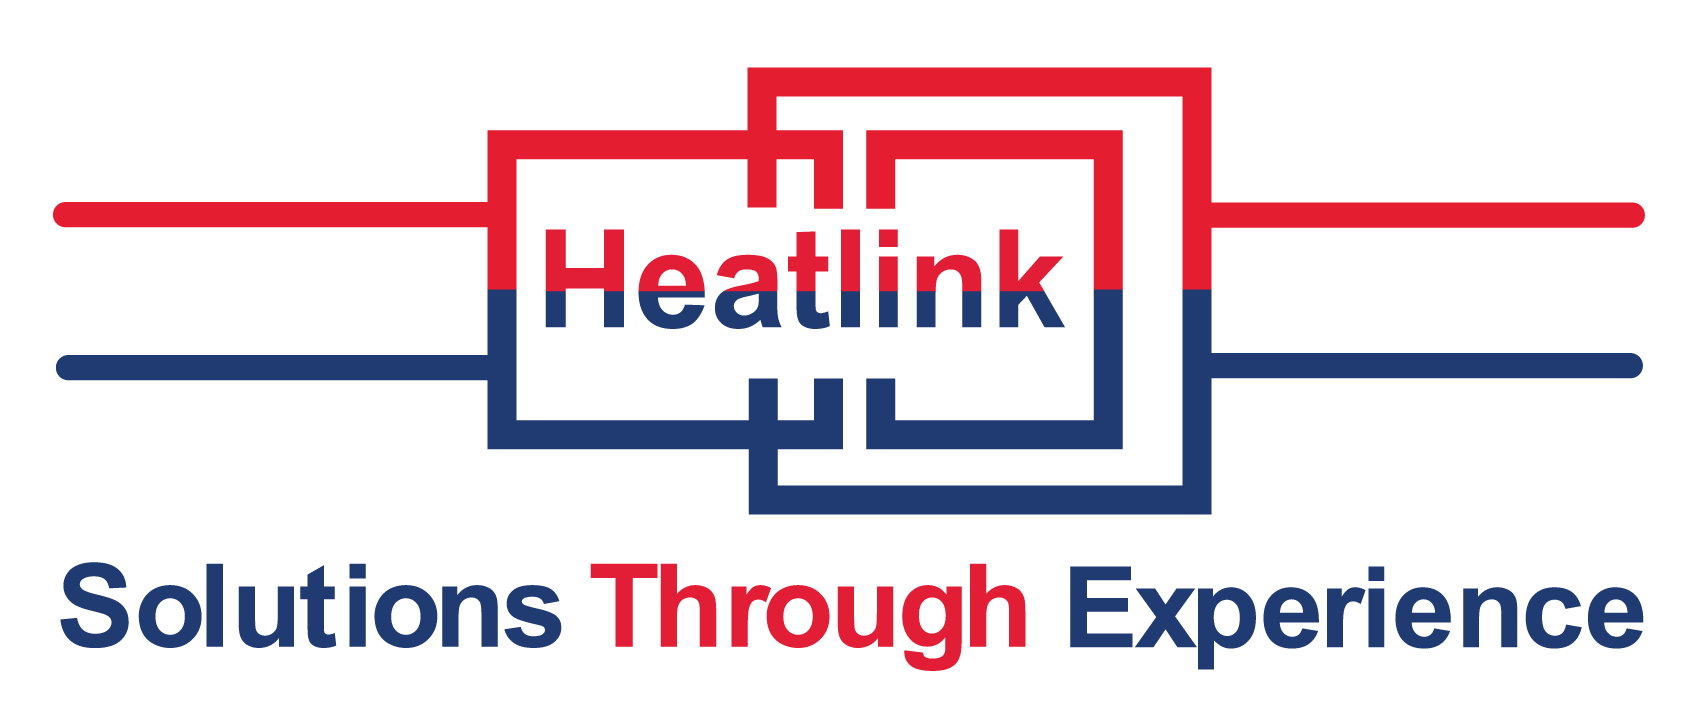 HEATLINK LOGO - Client Services